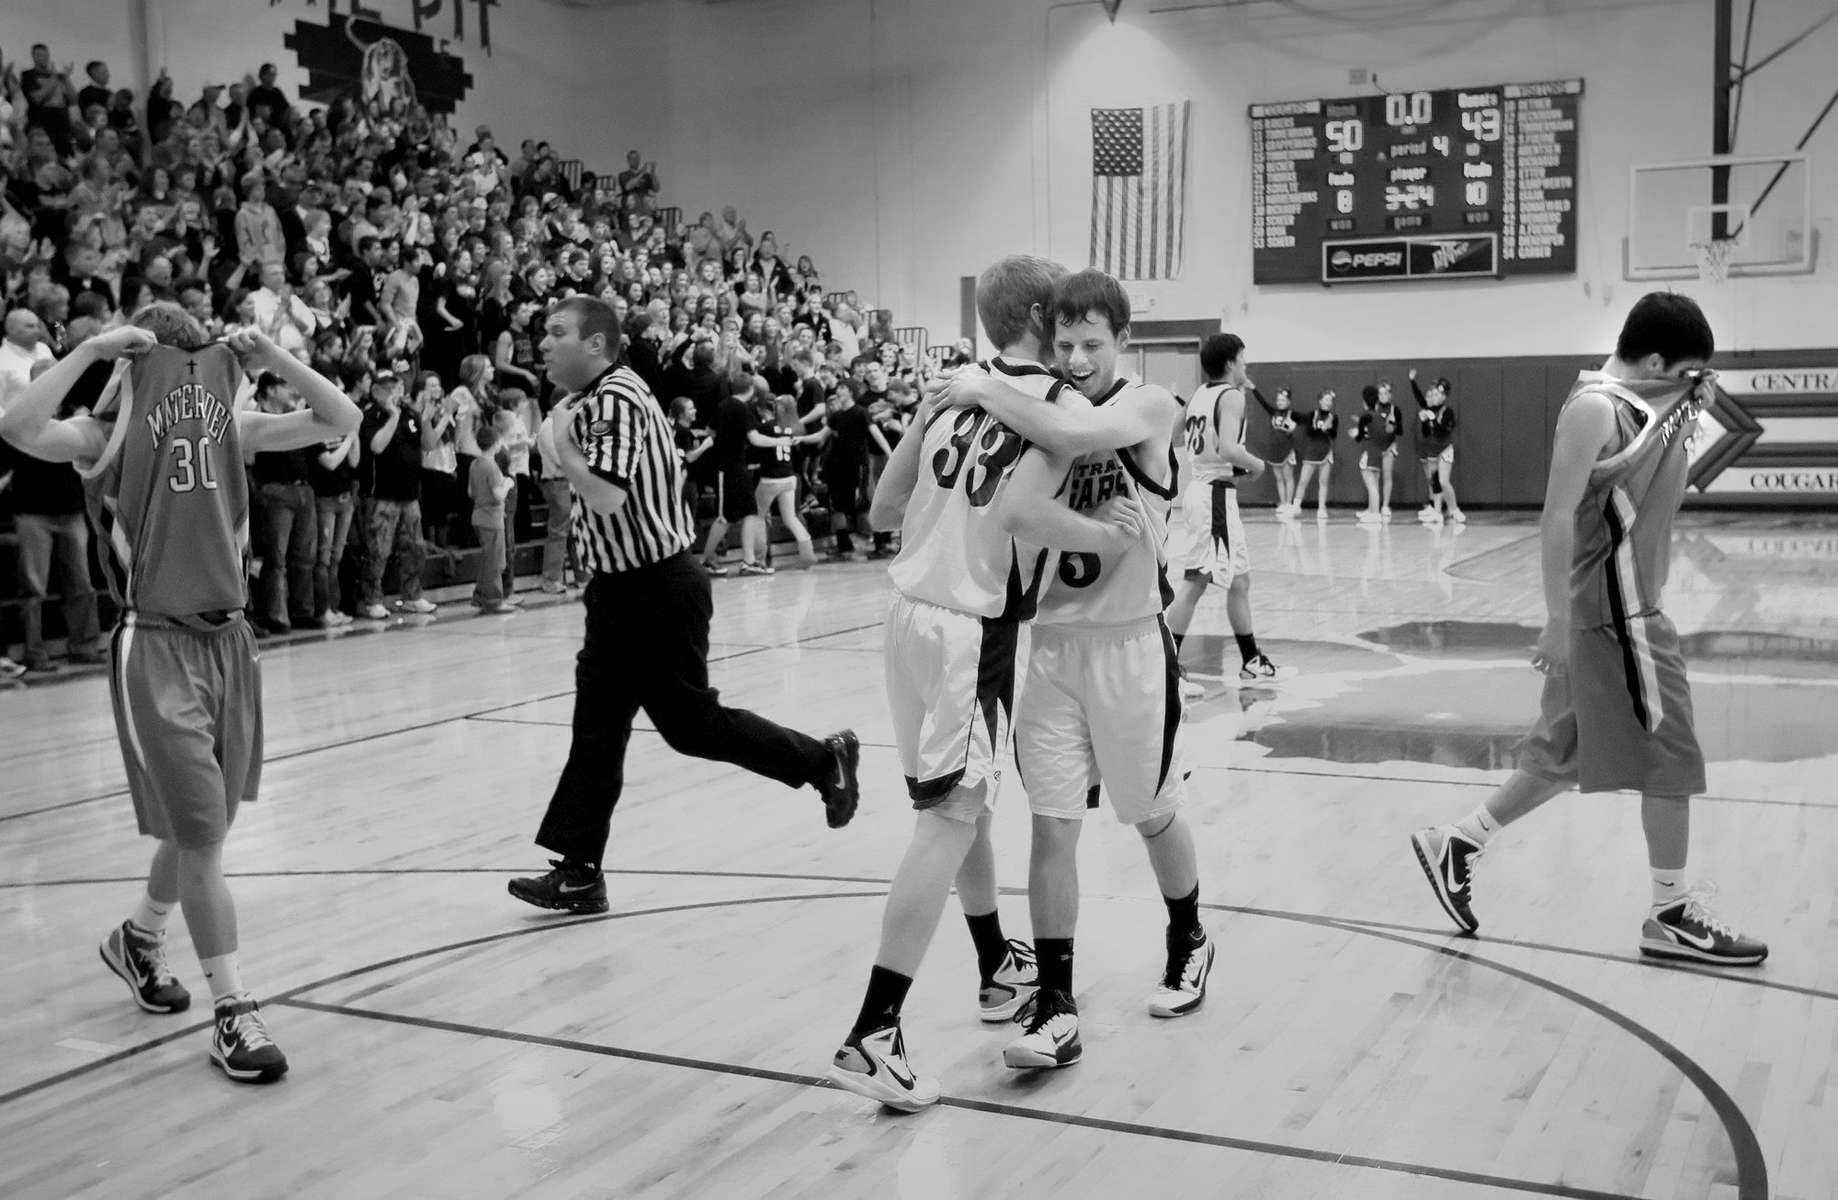 Friday February 11, 2011--Breese Central's Keaton Scheer, center left, and Brandon Rakers, center right, celebrate after the final buzzer of the Breese Central Mater Dei boys basketball ball game at Central on Friday.  Breese Central defeated Mater Dei 50-43.David Carson     dcarson@post-dispatch.com